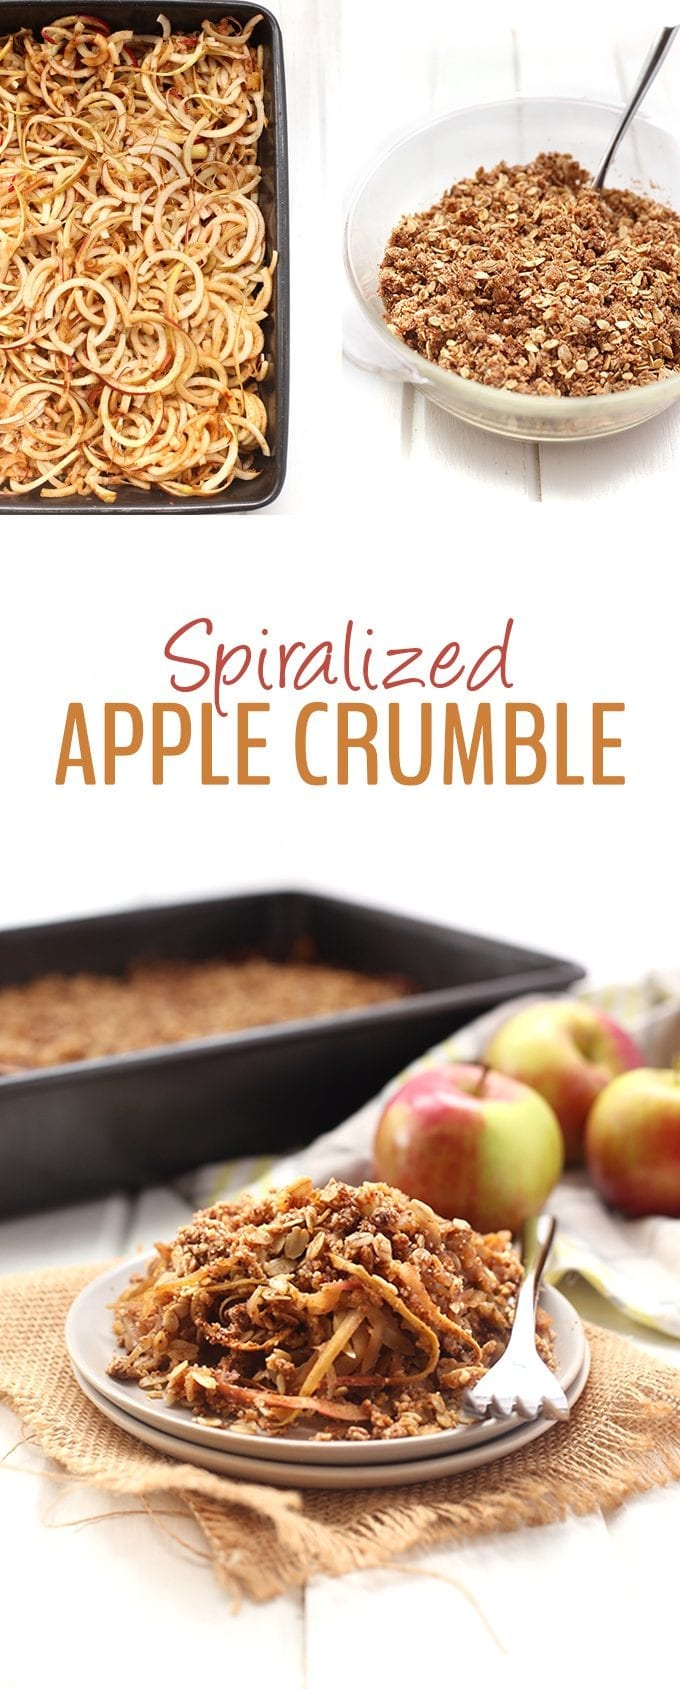 Grab your spiralizer because it's time to whip up this healthy apple crumble! Made with apple noodles and healthy ingredients like coconut sugar and oil, you'll never make another apple crumble again #spiralizedapplecrumble #applecrumble #healthy